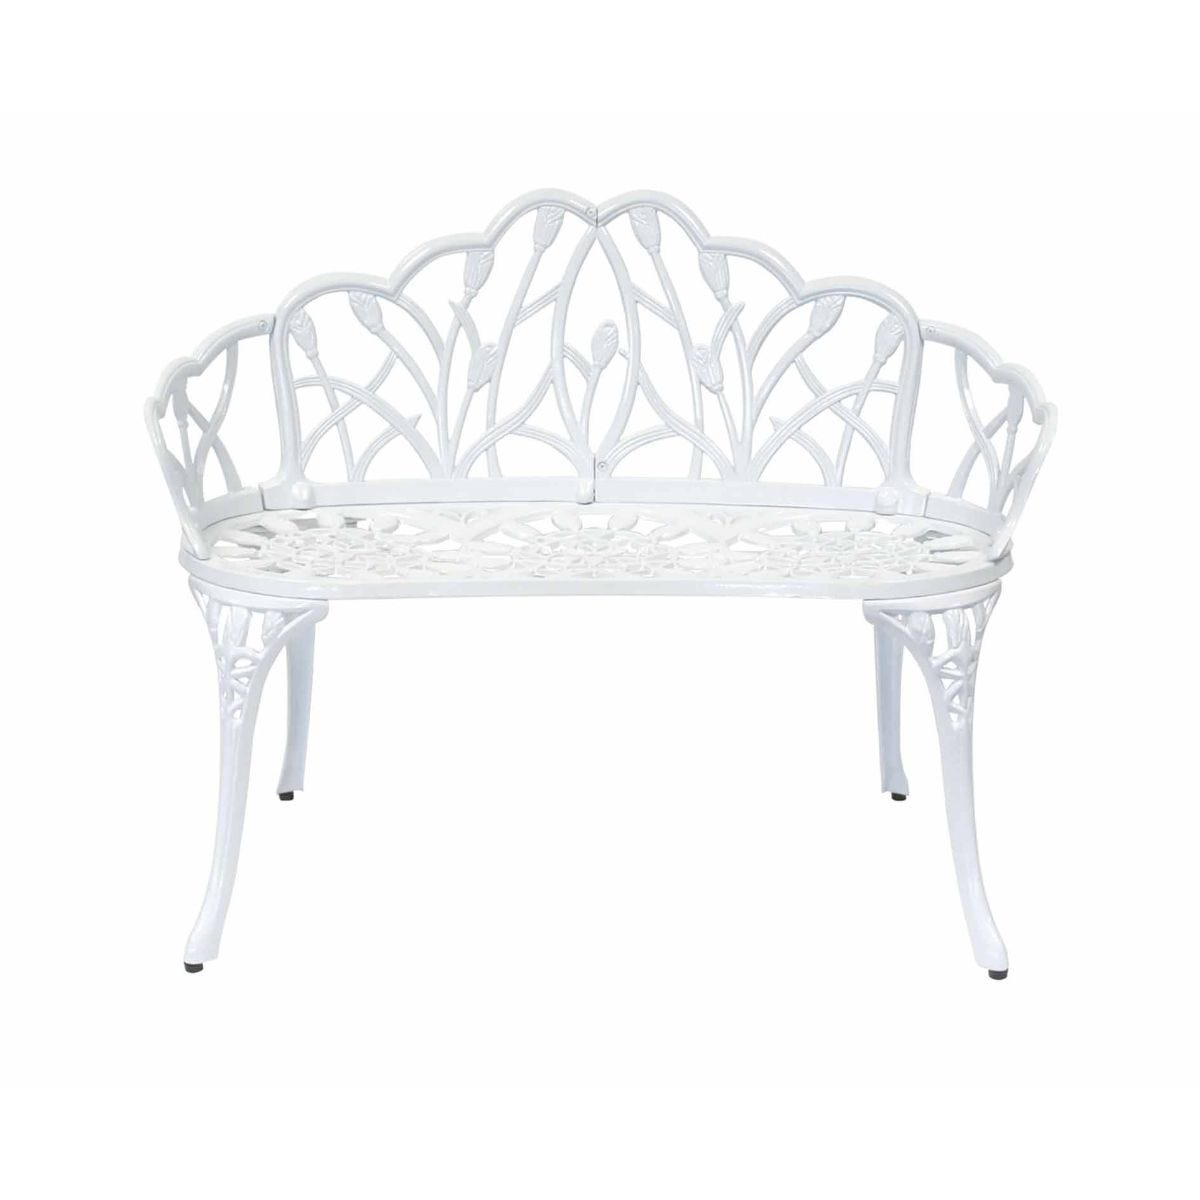 Charles Bentley Cast Aluminium Tulip 2 Seater Garden Bench, White